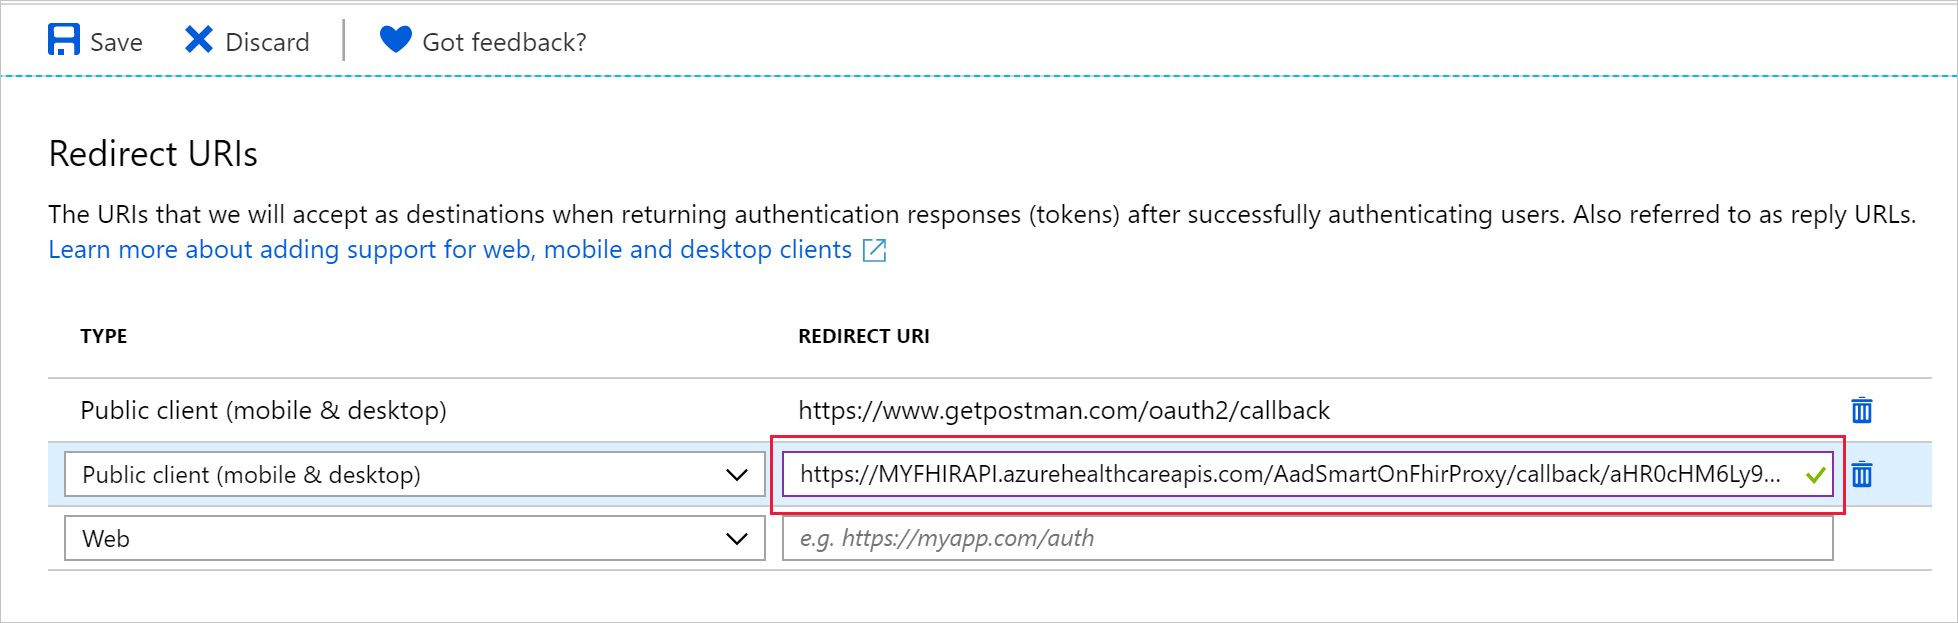 Reply URL configured for the public client